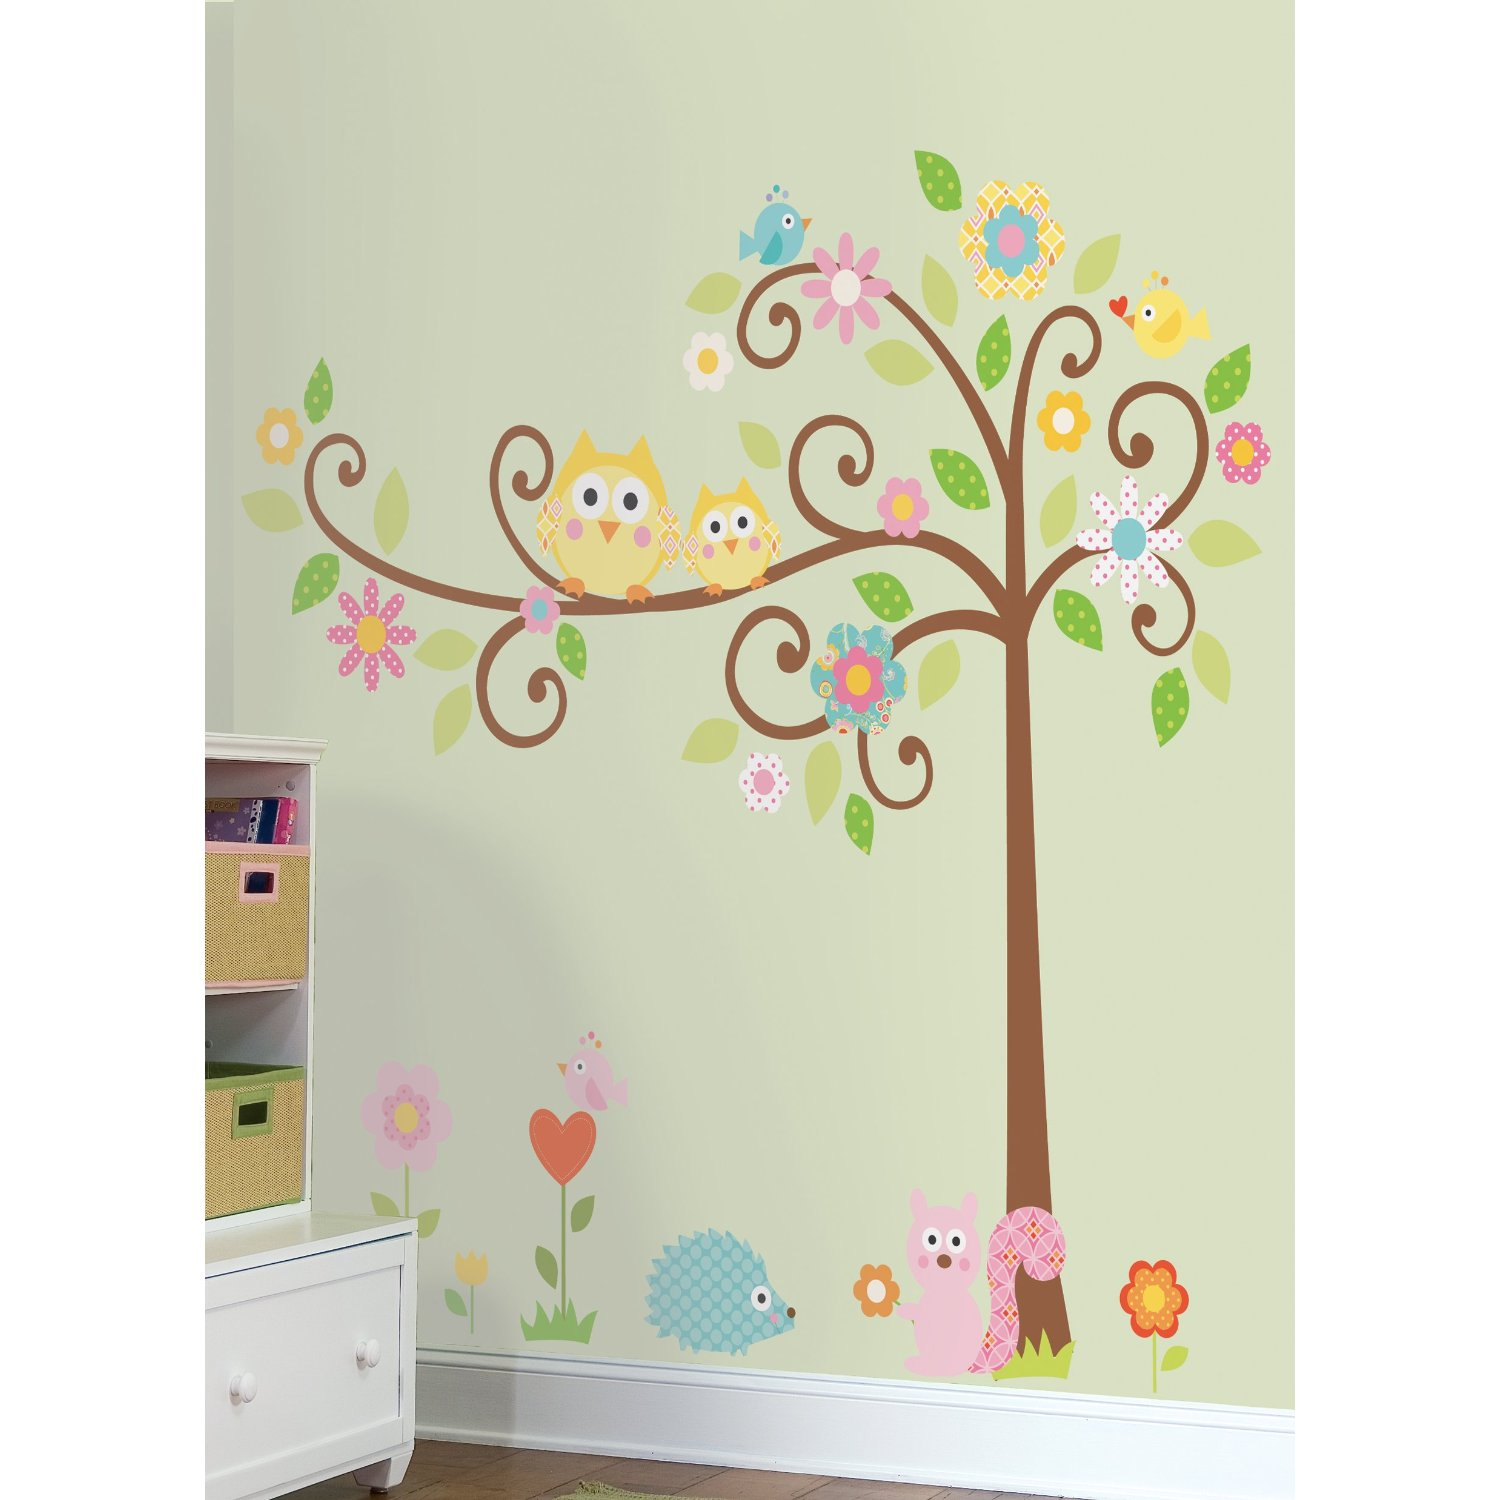 Nursery room ideas nursery wall decals for Baby nursery mural